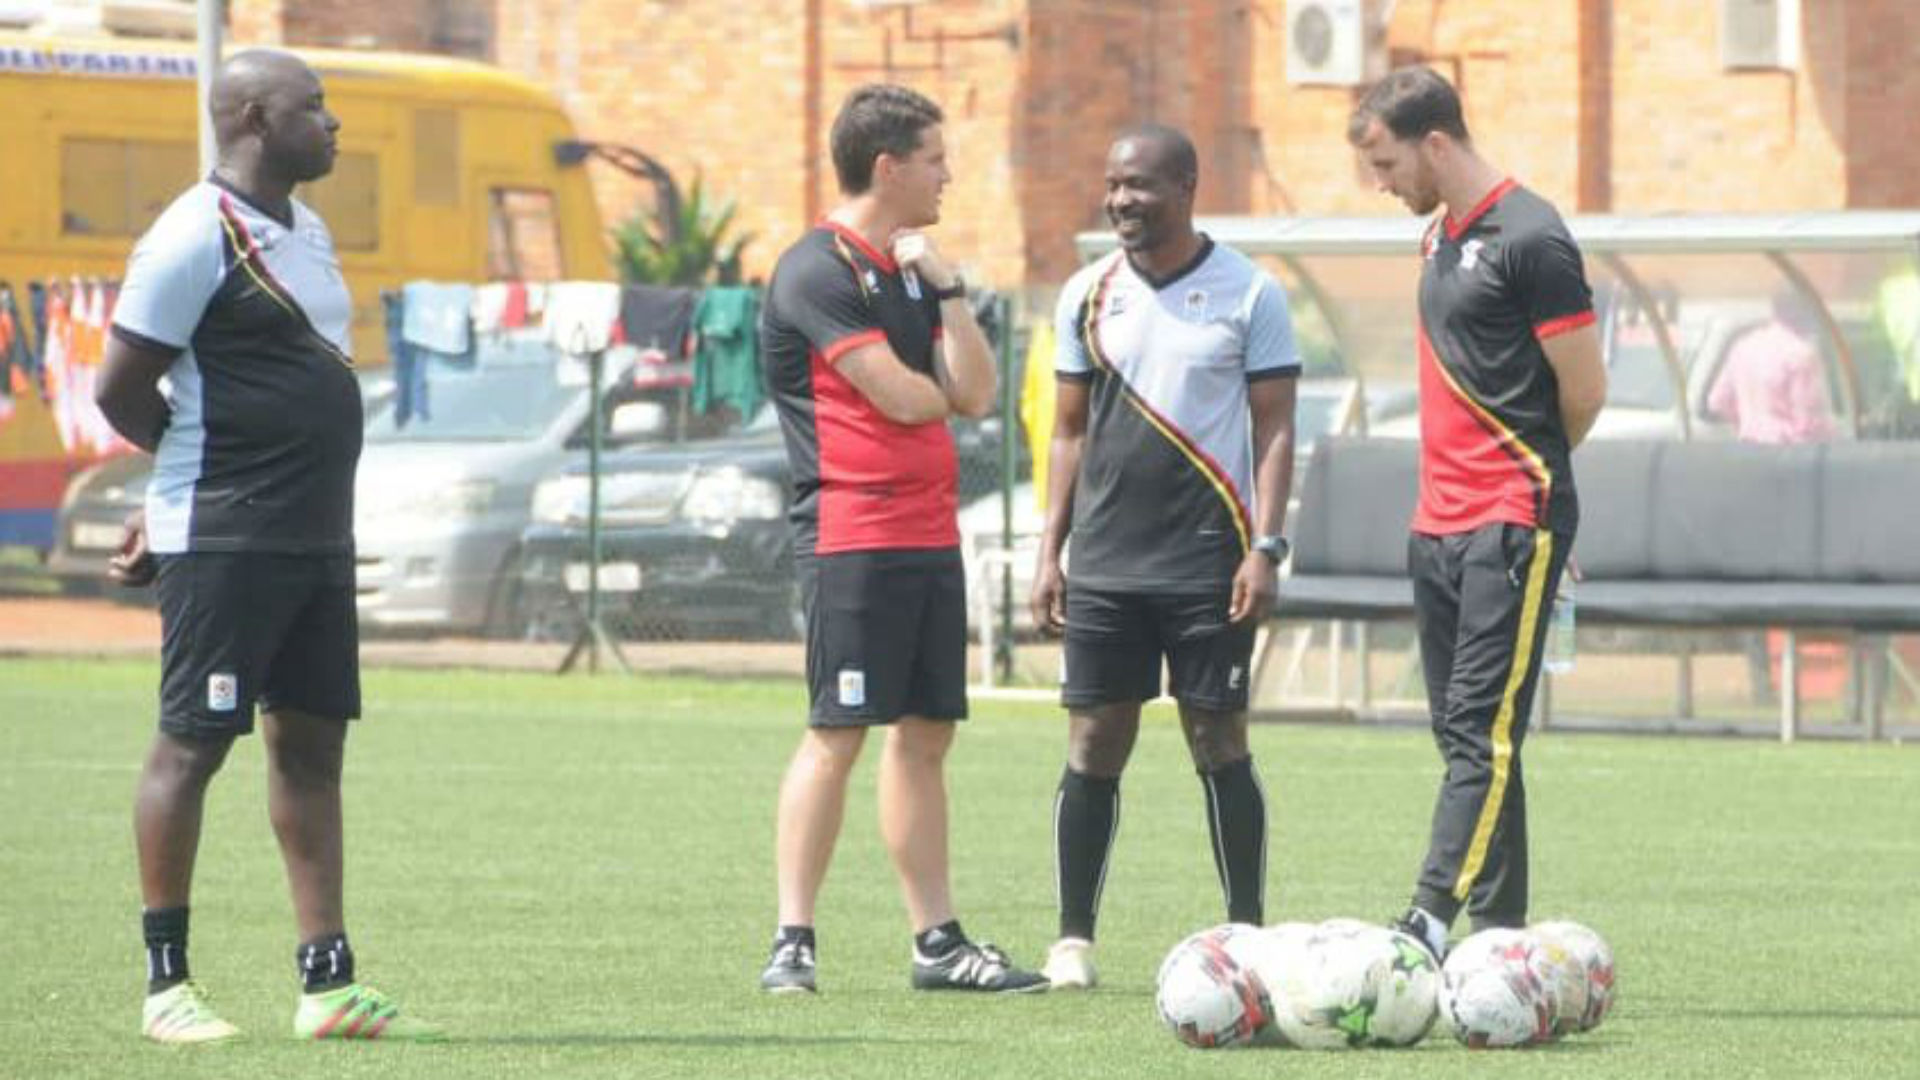 'Everyone one is focused, determined' – McKinstry assesses Uganda's Chan preparedness